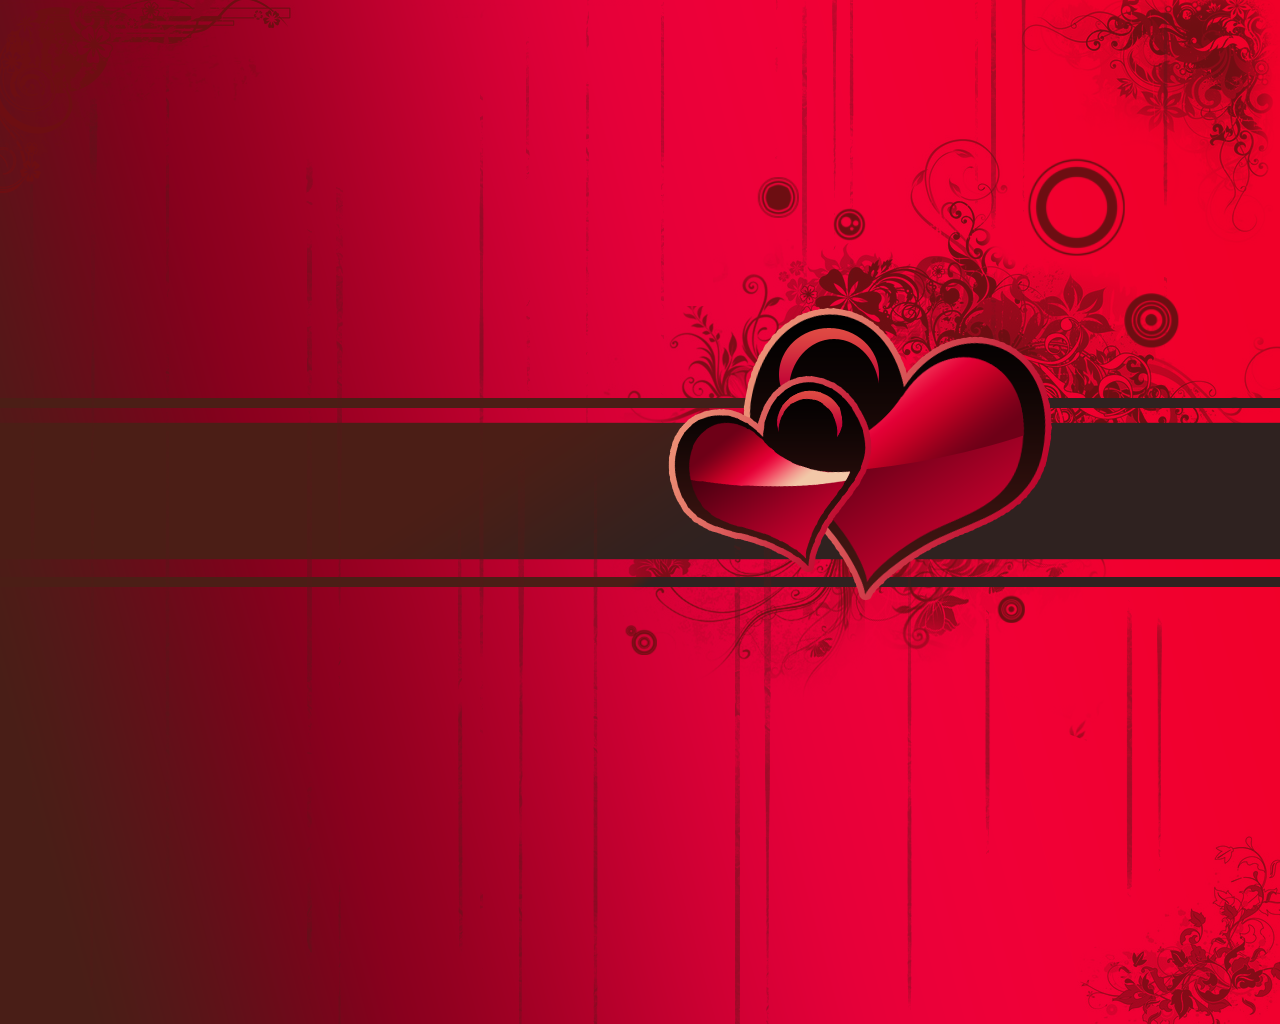 Love Greeting Hd Wallpaper : Happy Valentines Day Love Greetings Templates Hd Wallpaper